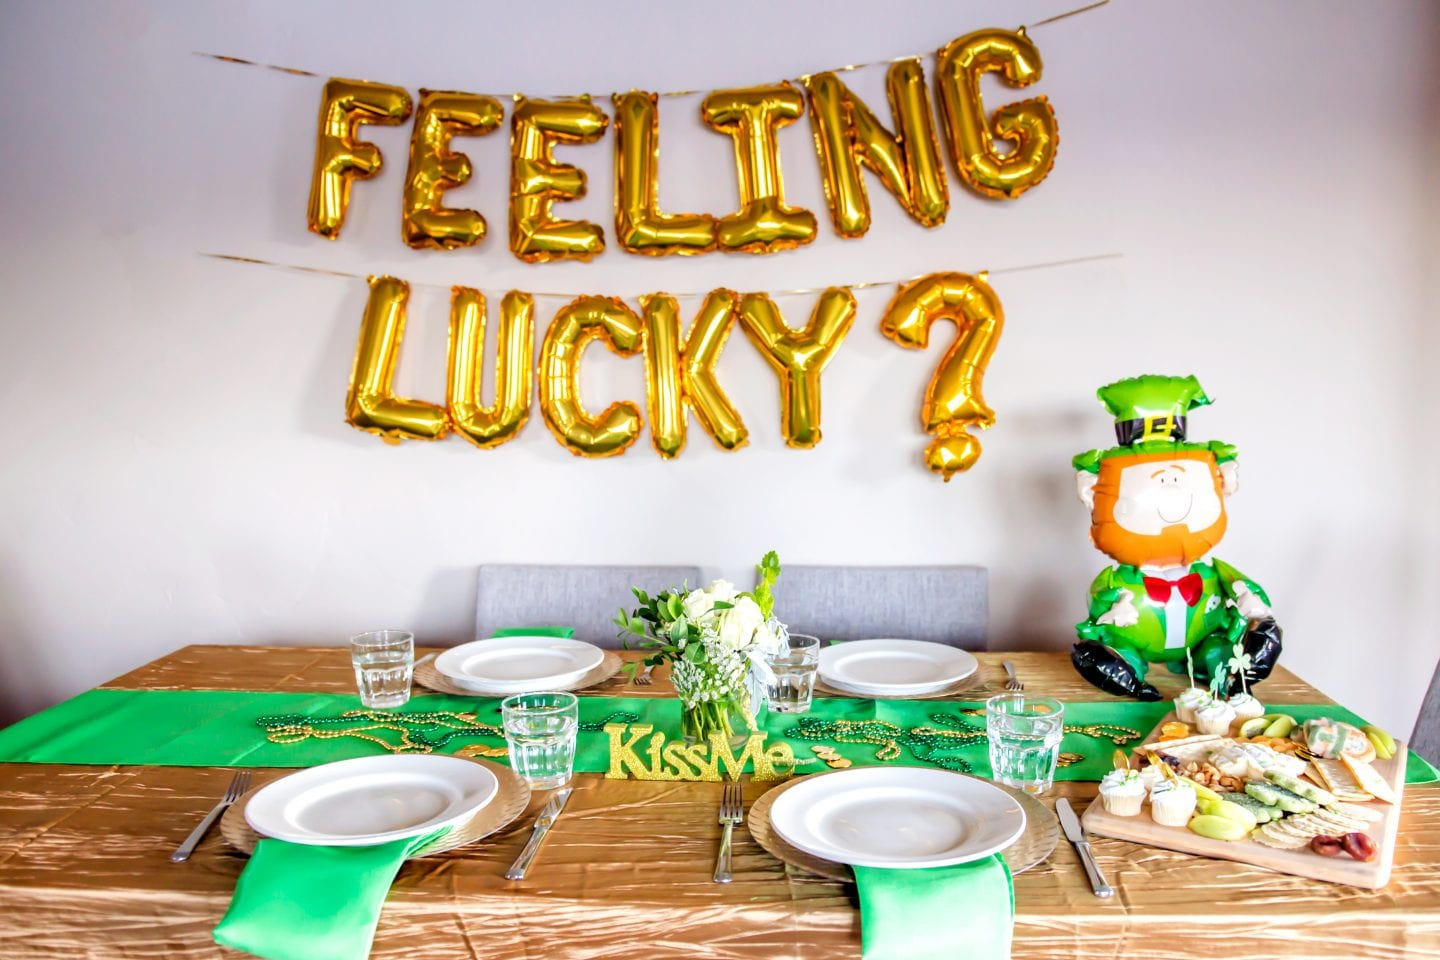 The Best St. Paddy's Day Party Ideas for 2021